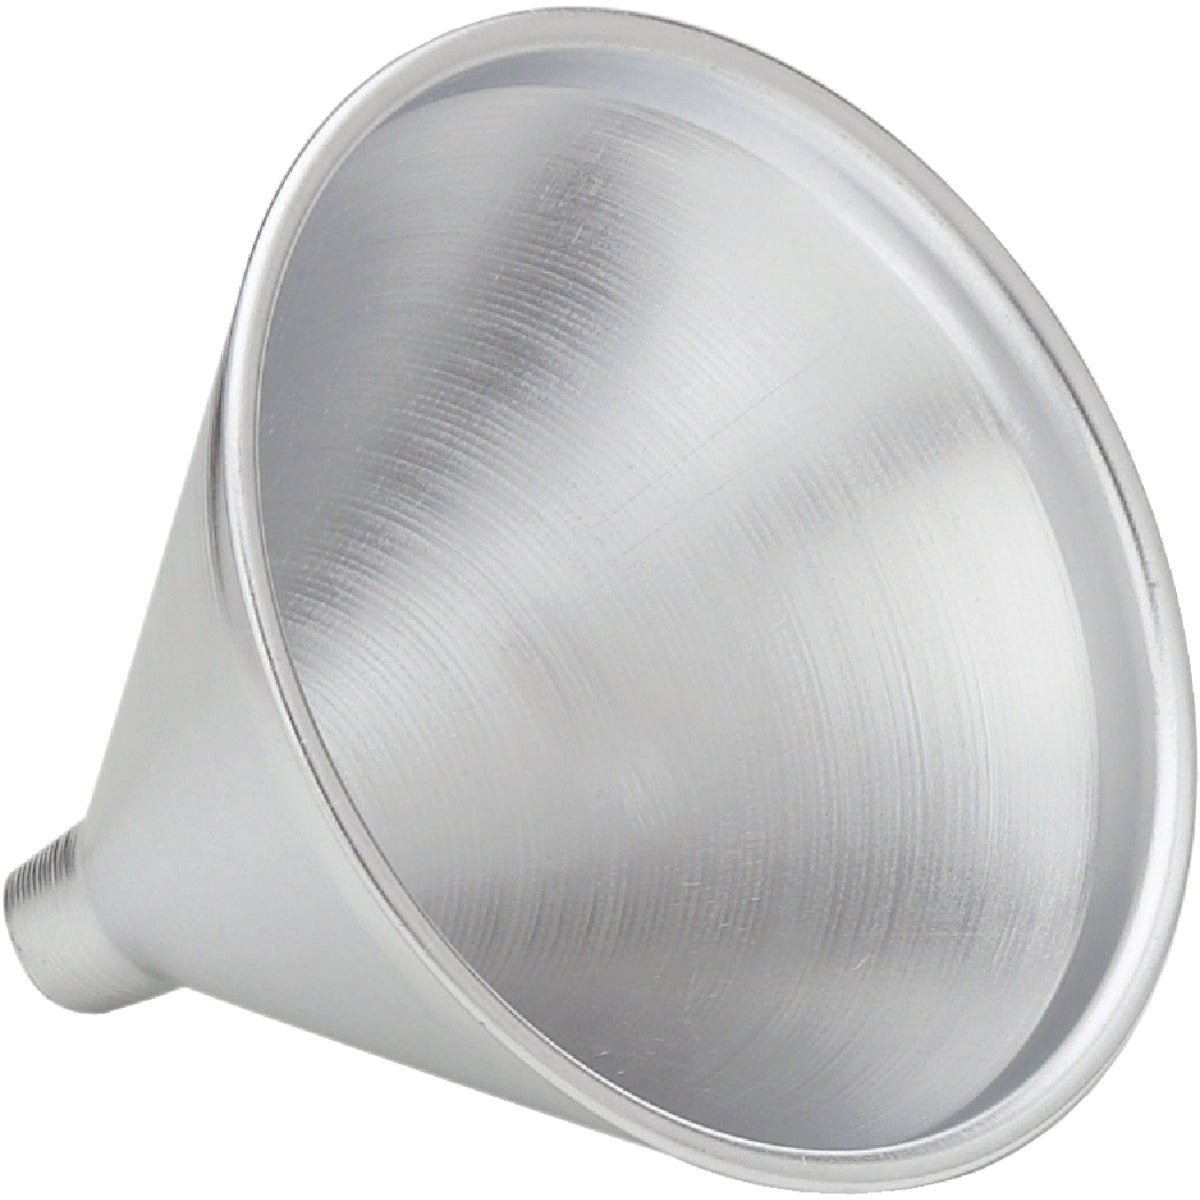 12OZ ALUMINUM FUNNEL - 698 by Harold Import